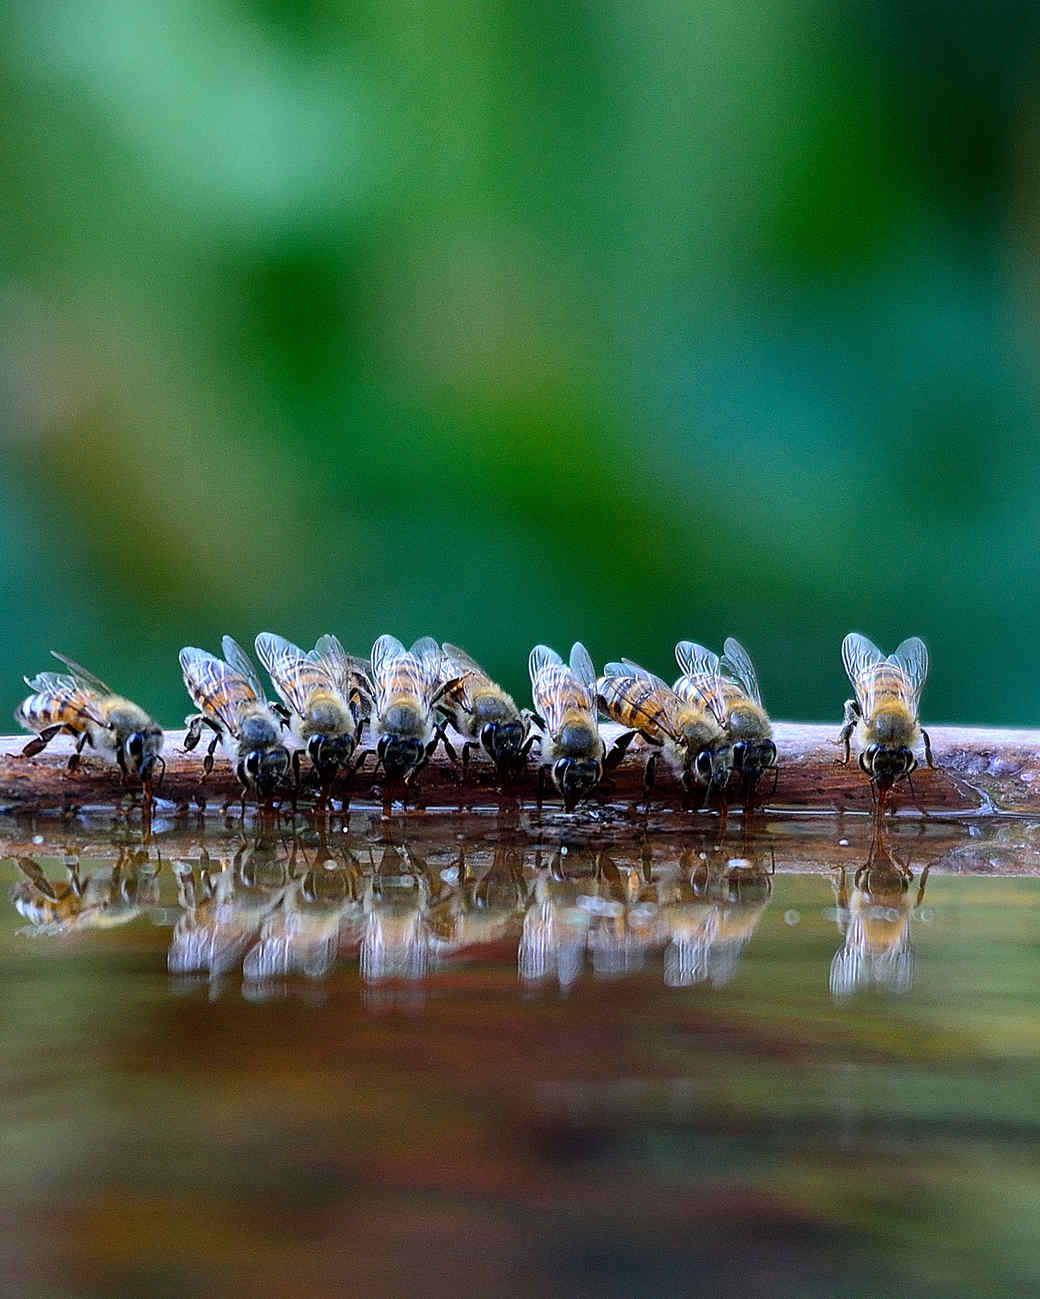 bees drinking from shallow water area